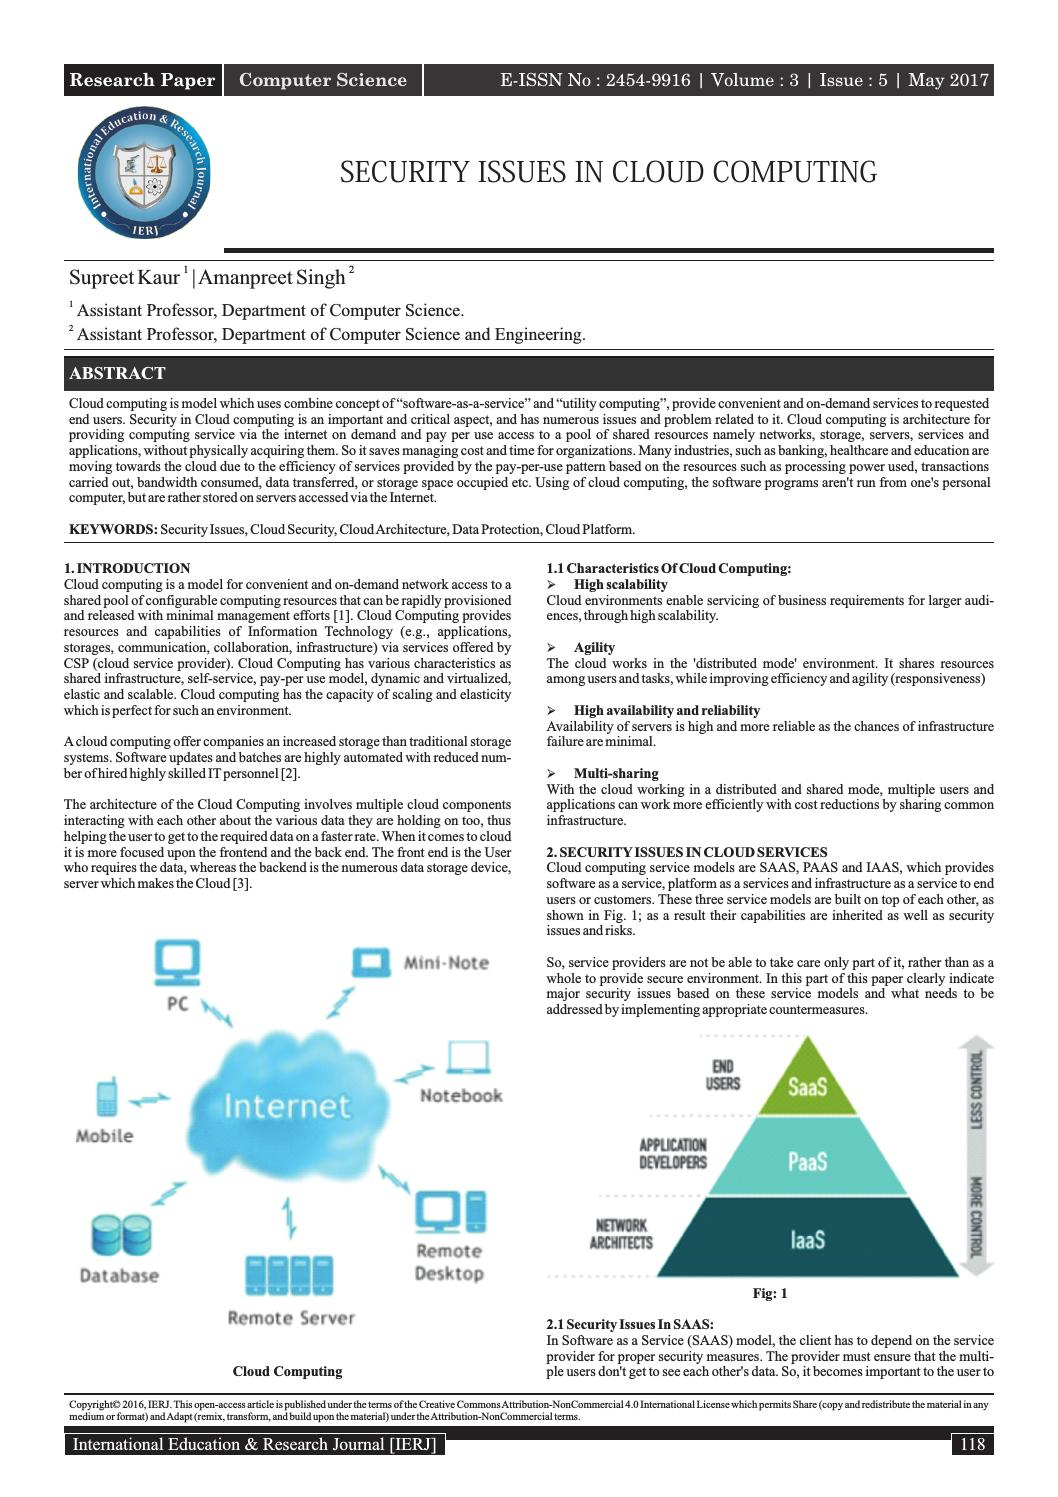 Security Issues In Cloud Computing By International Education And Research Journal Issuu